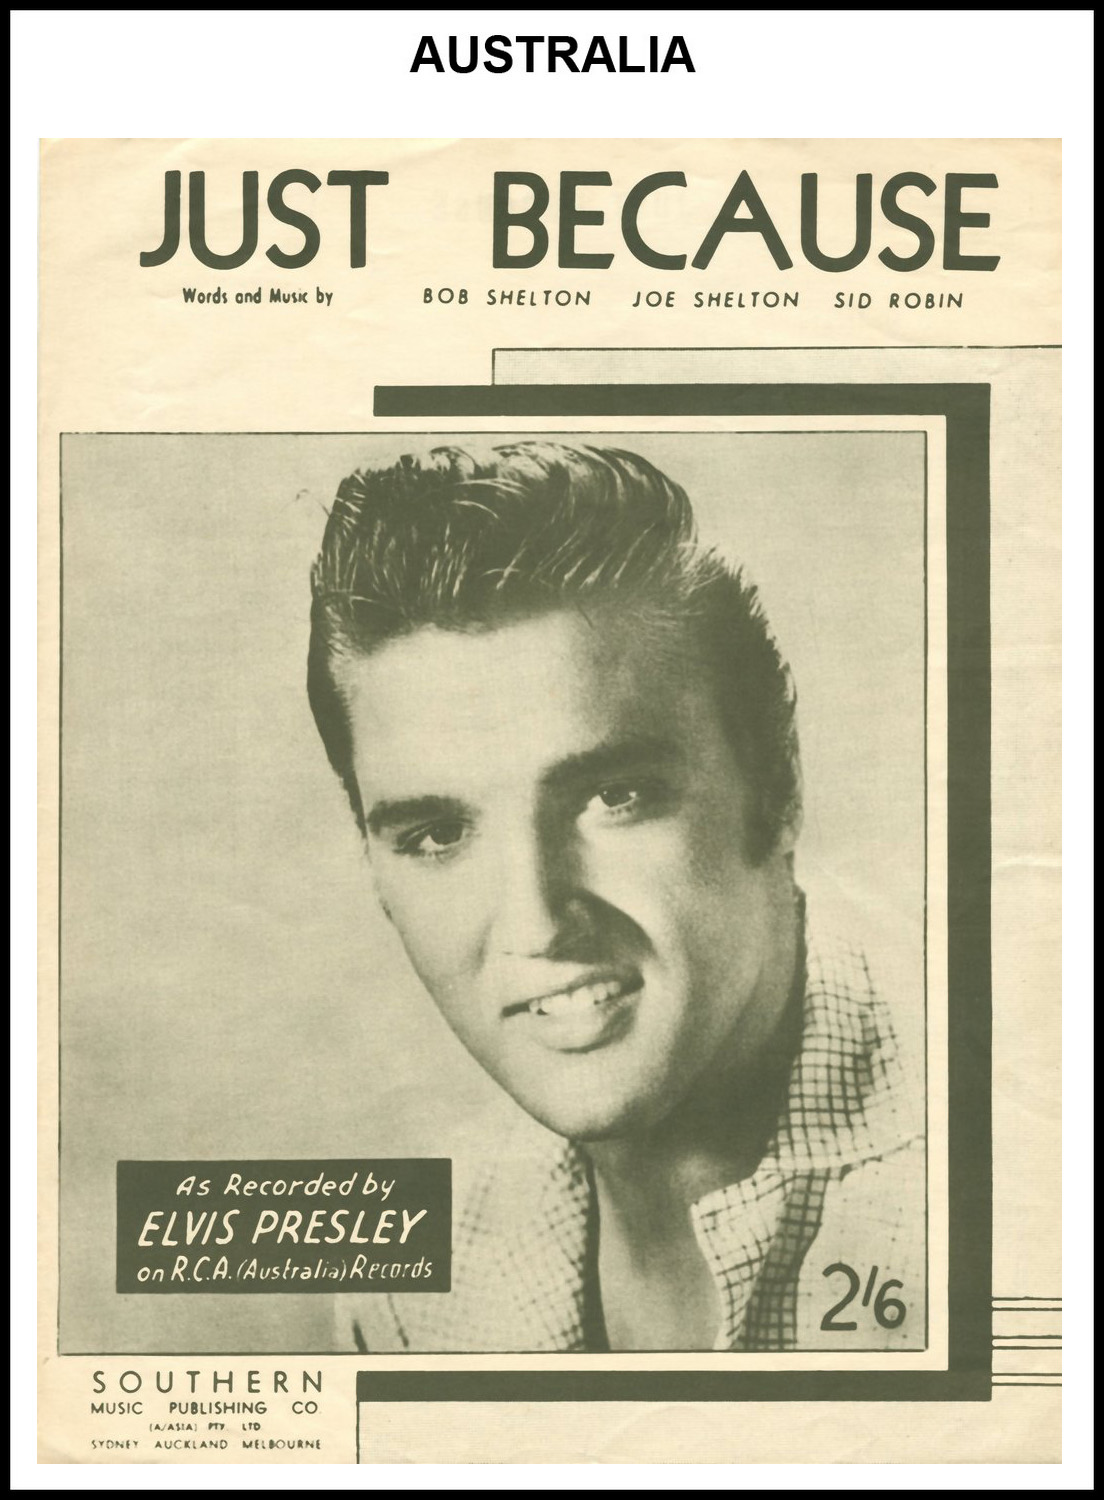 1956 - Just Because (Australia) (CHRIS GILES COLLECTION)